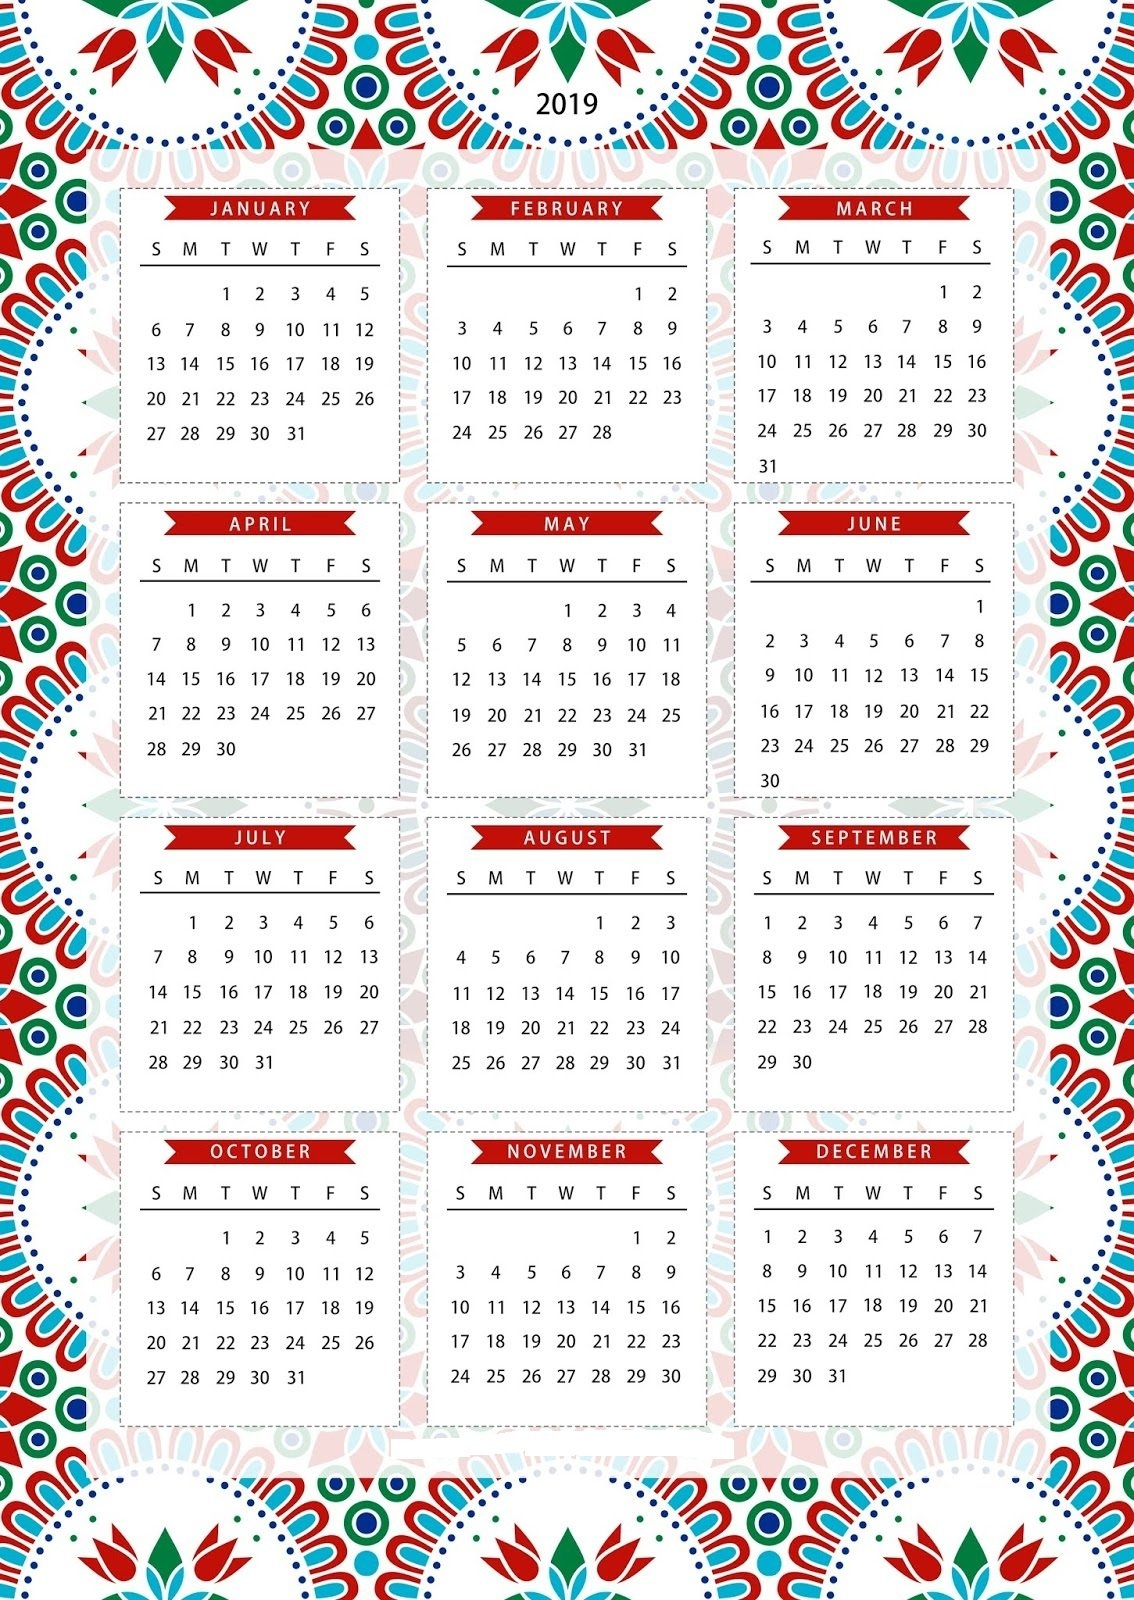 Free One Page Calendar Template Printable Download 2019 | Free Calendar 2019 1 Page